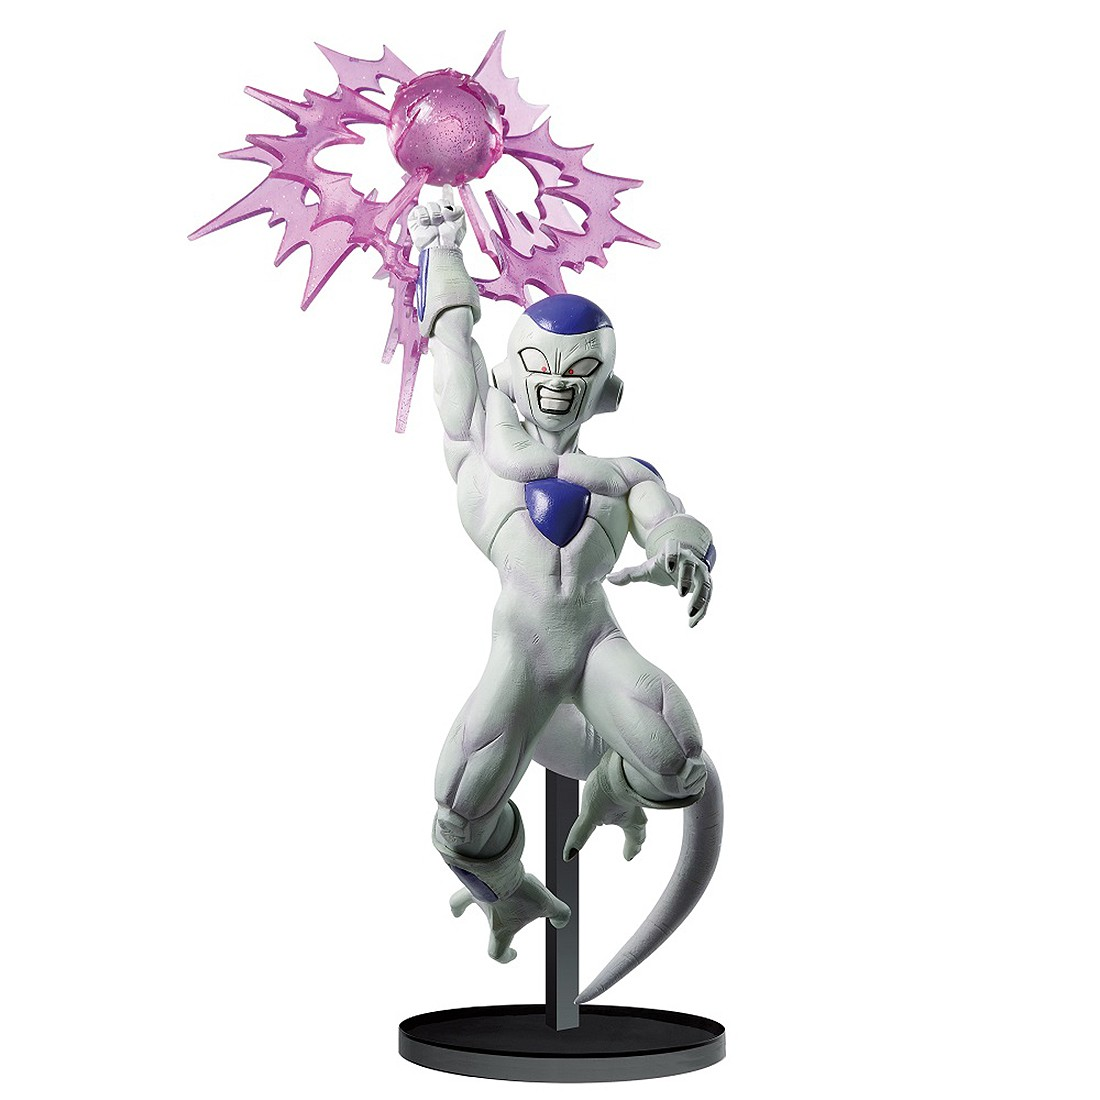 PREORDER - Banpresto Dragon Ball Z G x Materia The Frieza Figure (white)